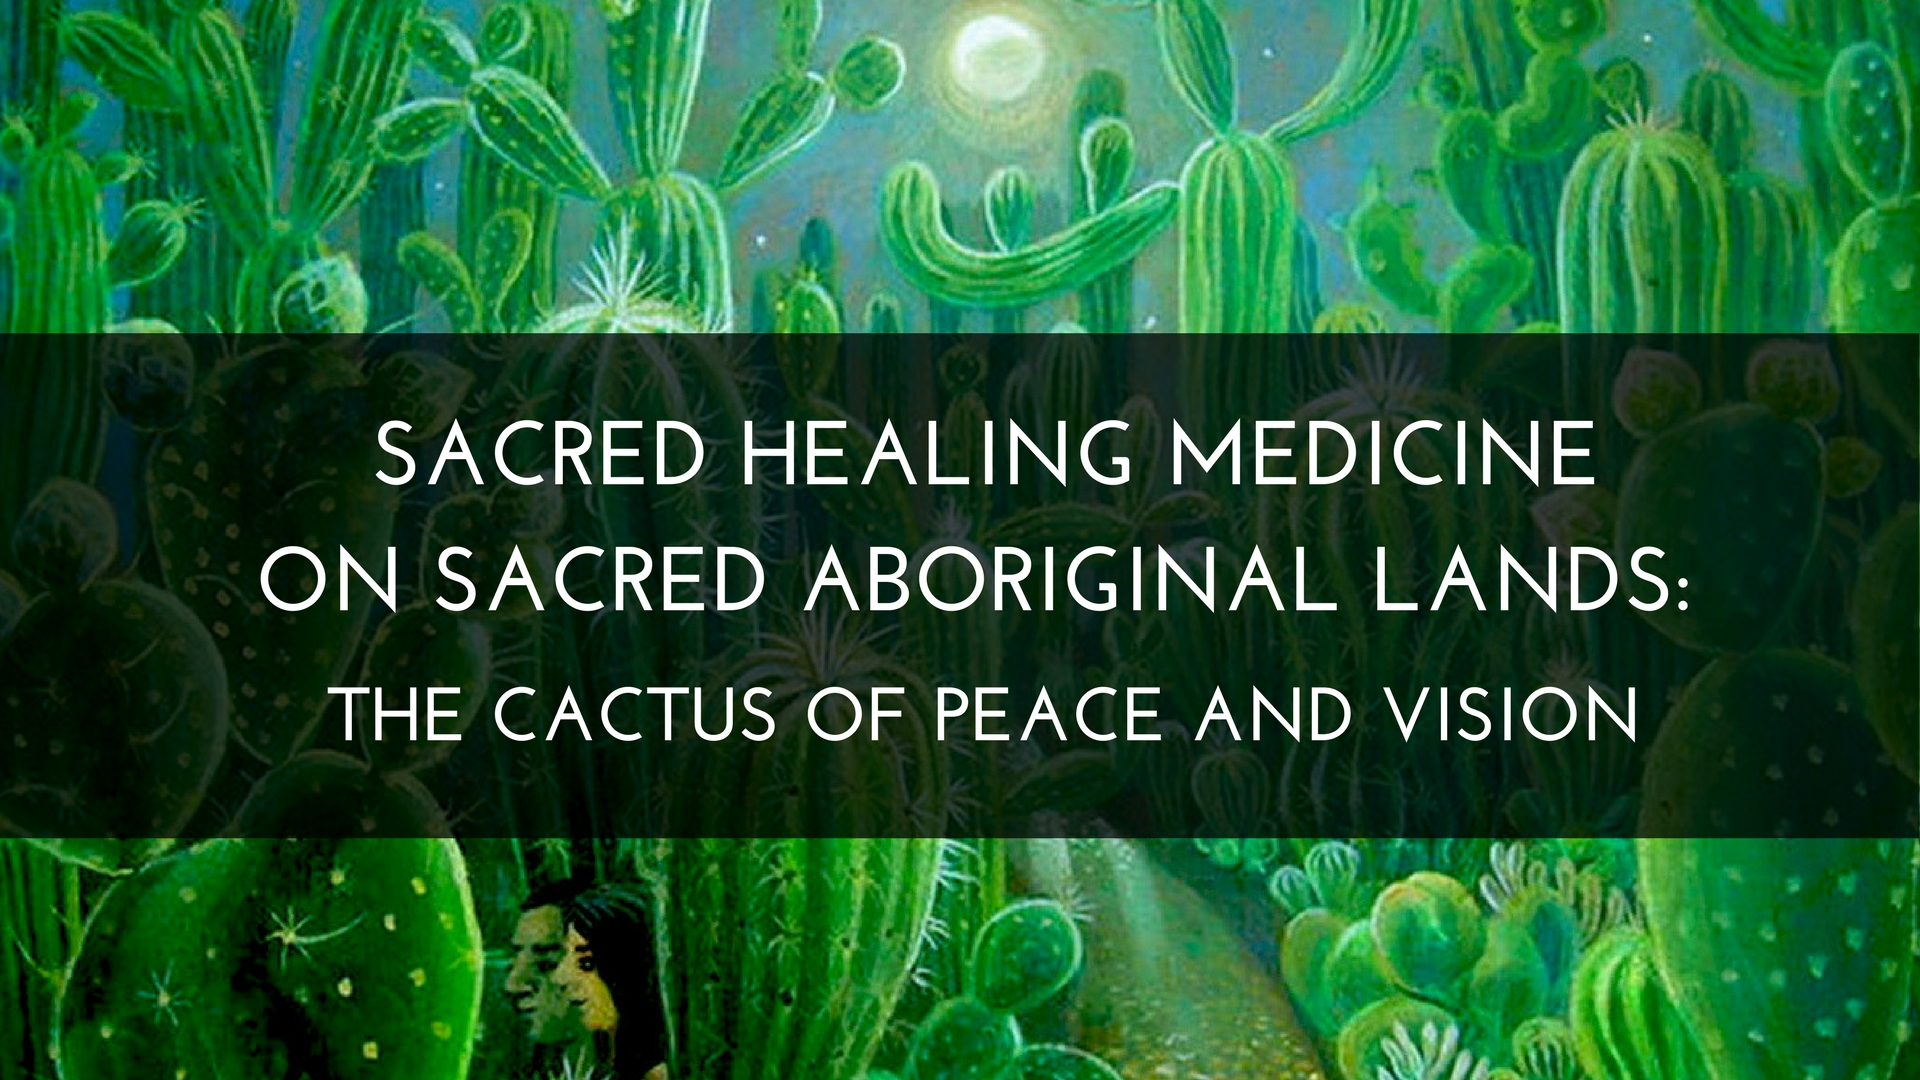 Sacred Healing Medicine on Sacred Aboriginal Lands: The Cactus of Peace and Vision